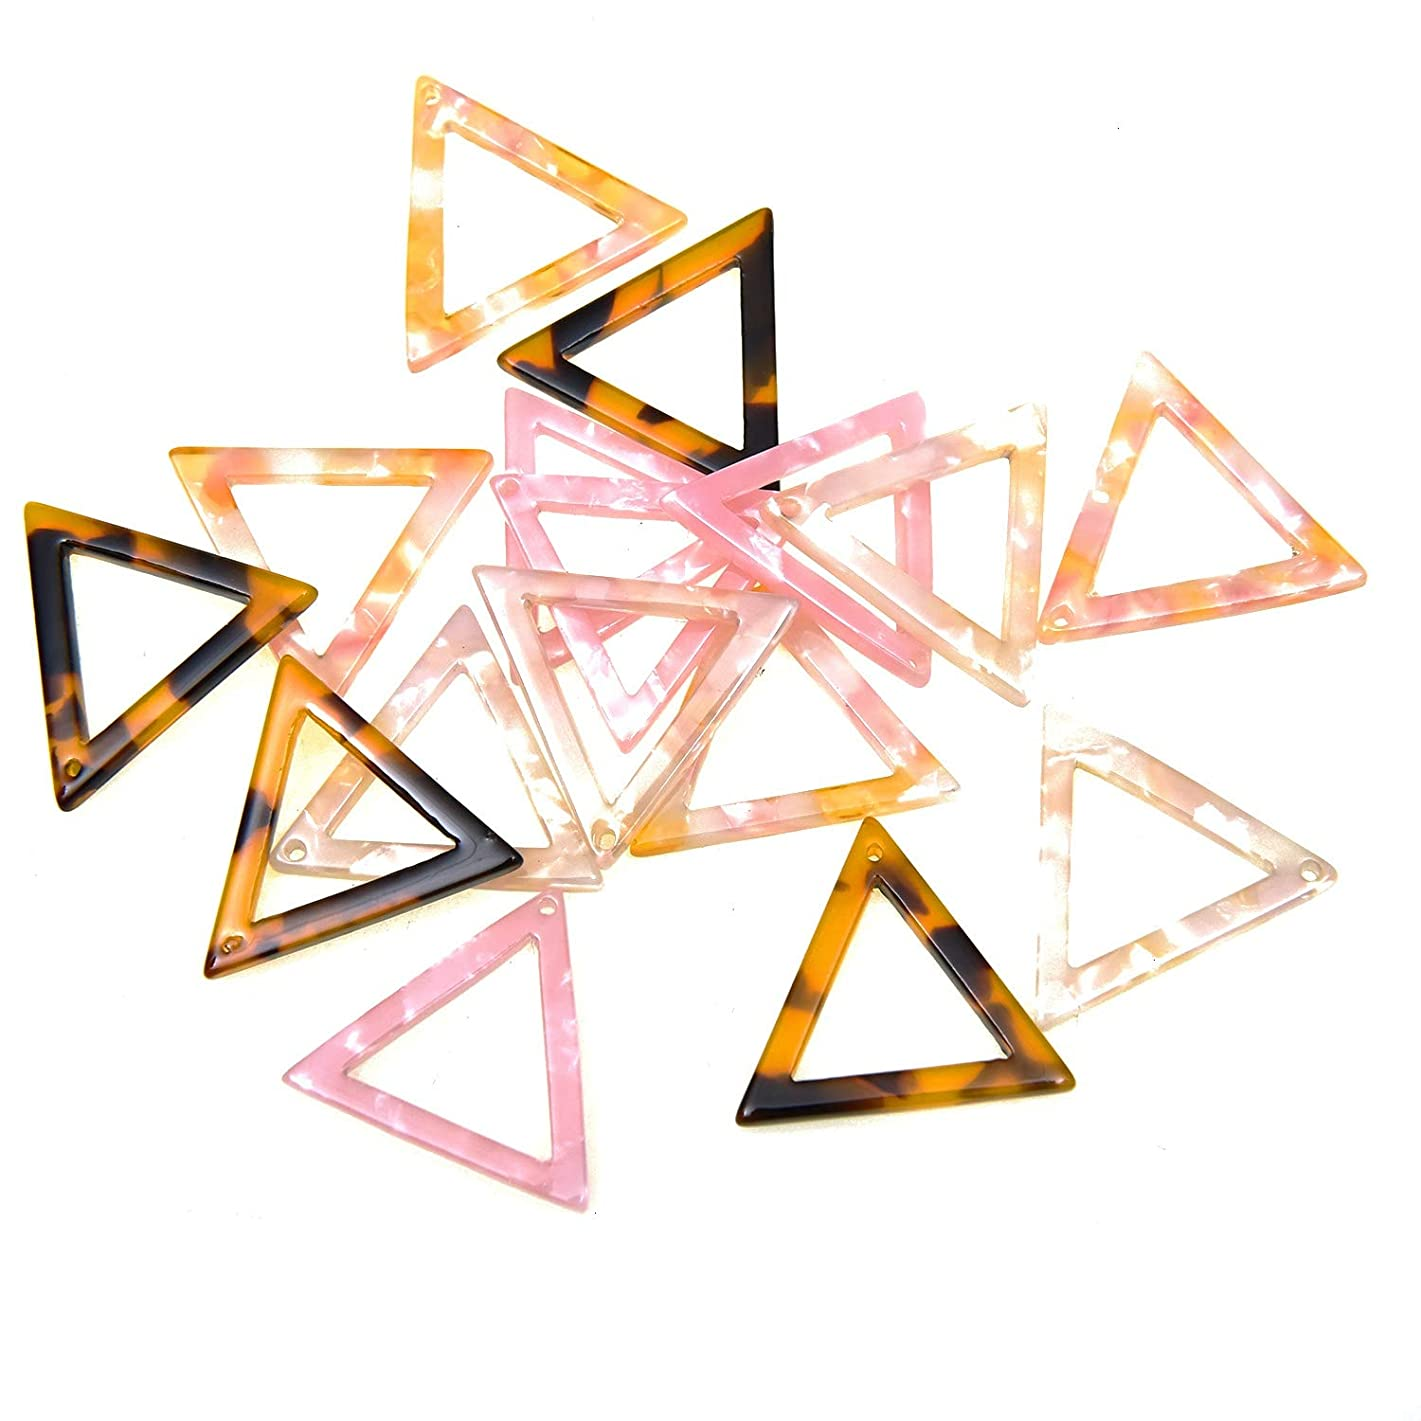 Monrocco 16Pcs Acetate Acrylic Bead Pendant Acetic Acid Triangle Charm Pendant Acetate Connector Acrylic Supplies Necklace Earring Supplies